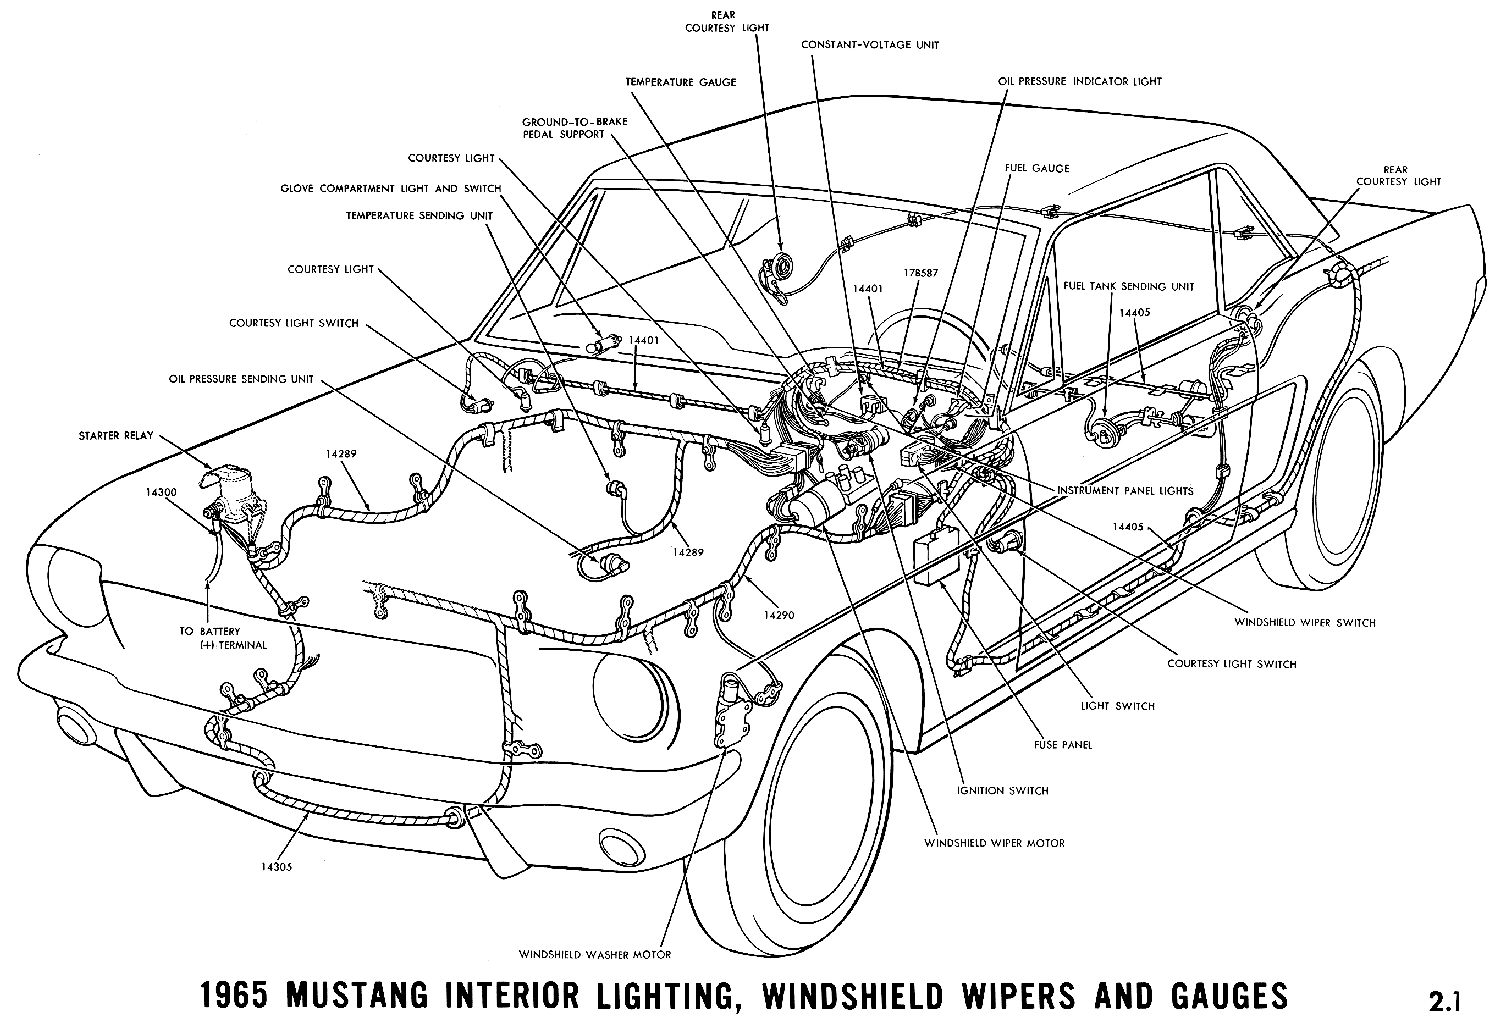 1965 Mustang Wiring Diagrams Average Joe Restoration 65 Mustang Wiring  Harness 65 Mustang Wiper Wiring Diagram